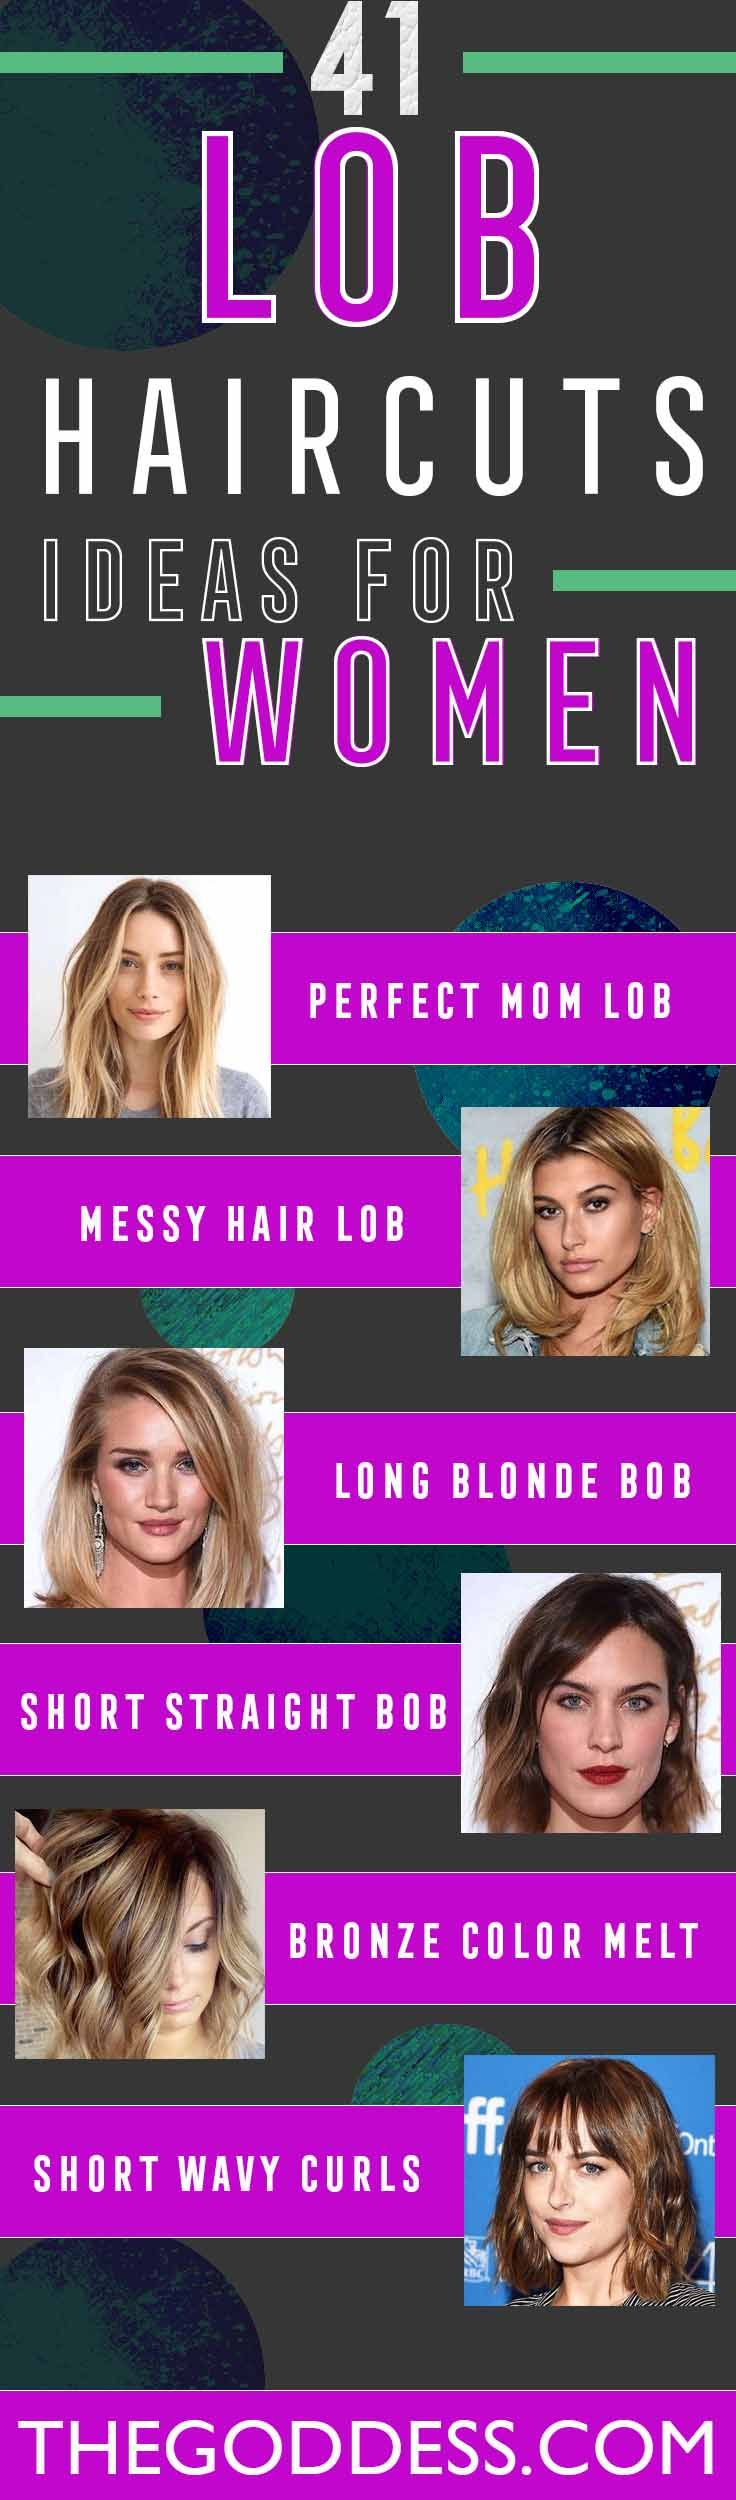 41 Lob Haircut Ideas For Women - What is a lob? Step by step easy tutorials on how to cut your hair for a lob haircut and amazing ideas for layered, and straight lobs. Ideas for lobs with bangs, thick hair, wavy and thin hair. For long hair and medium hair. For round faces and sharp features - thegoddess.com/lob-haircut-ideas-women